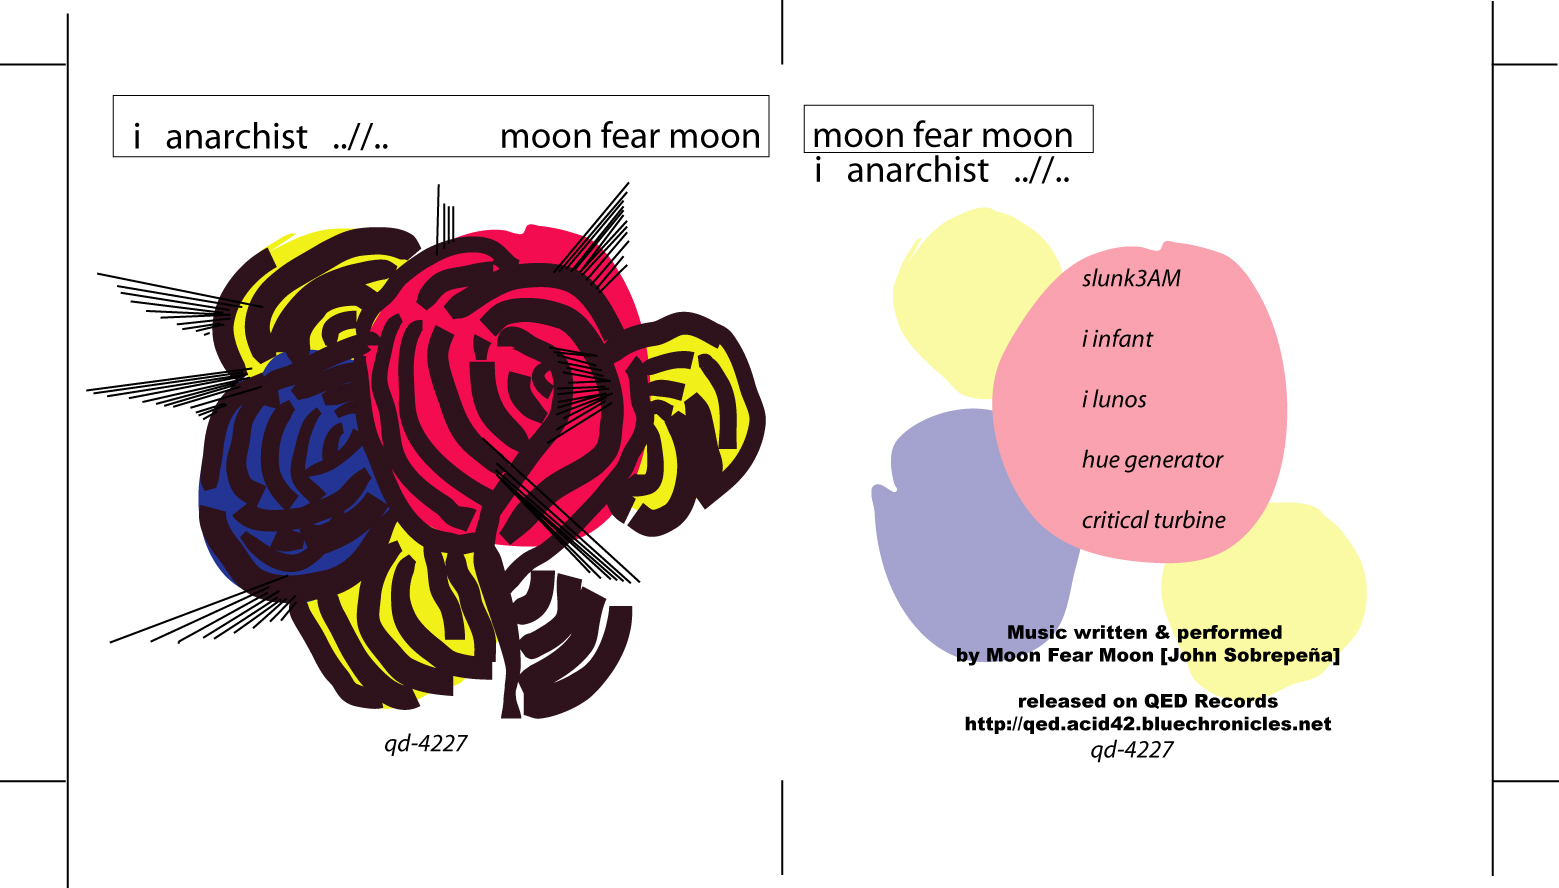 (qd-4227) Moon Fear Moon - i anarchist